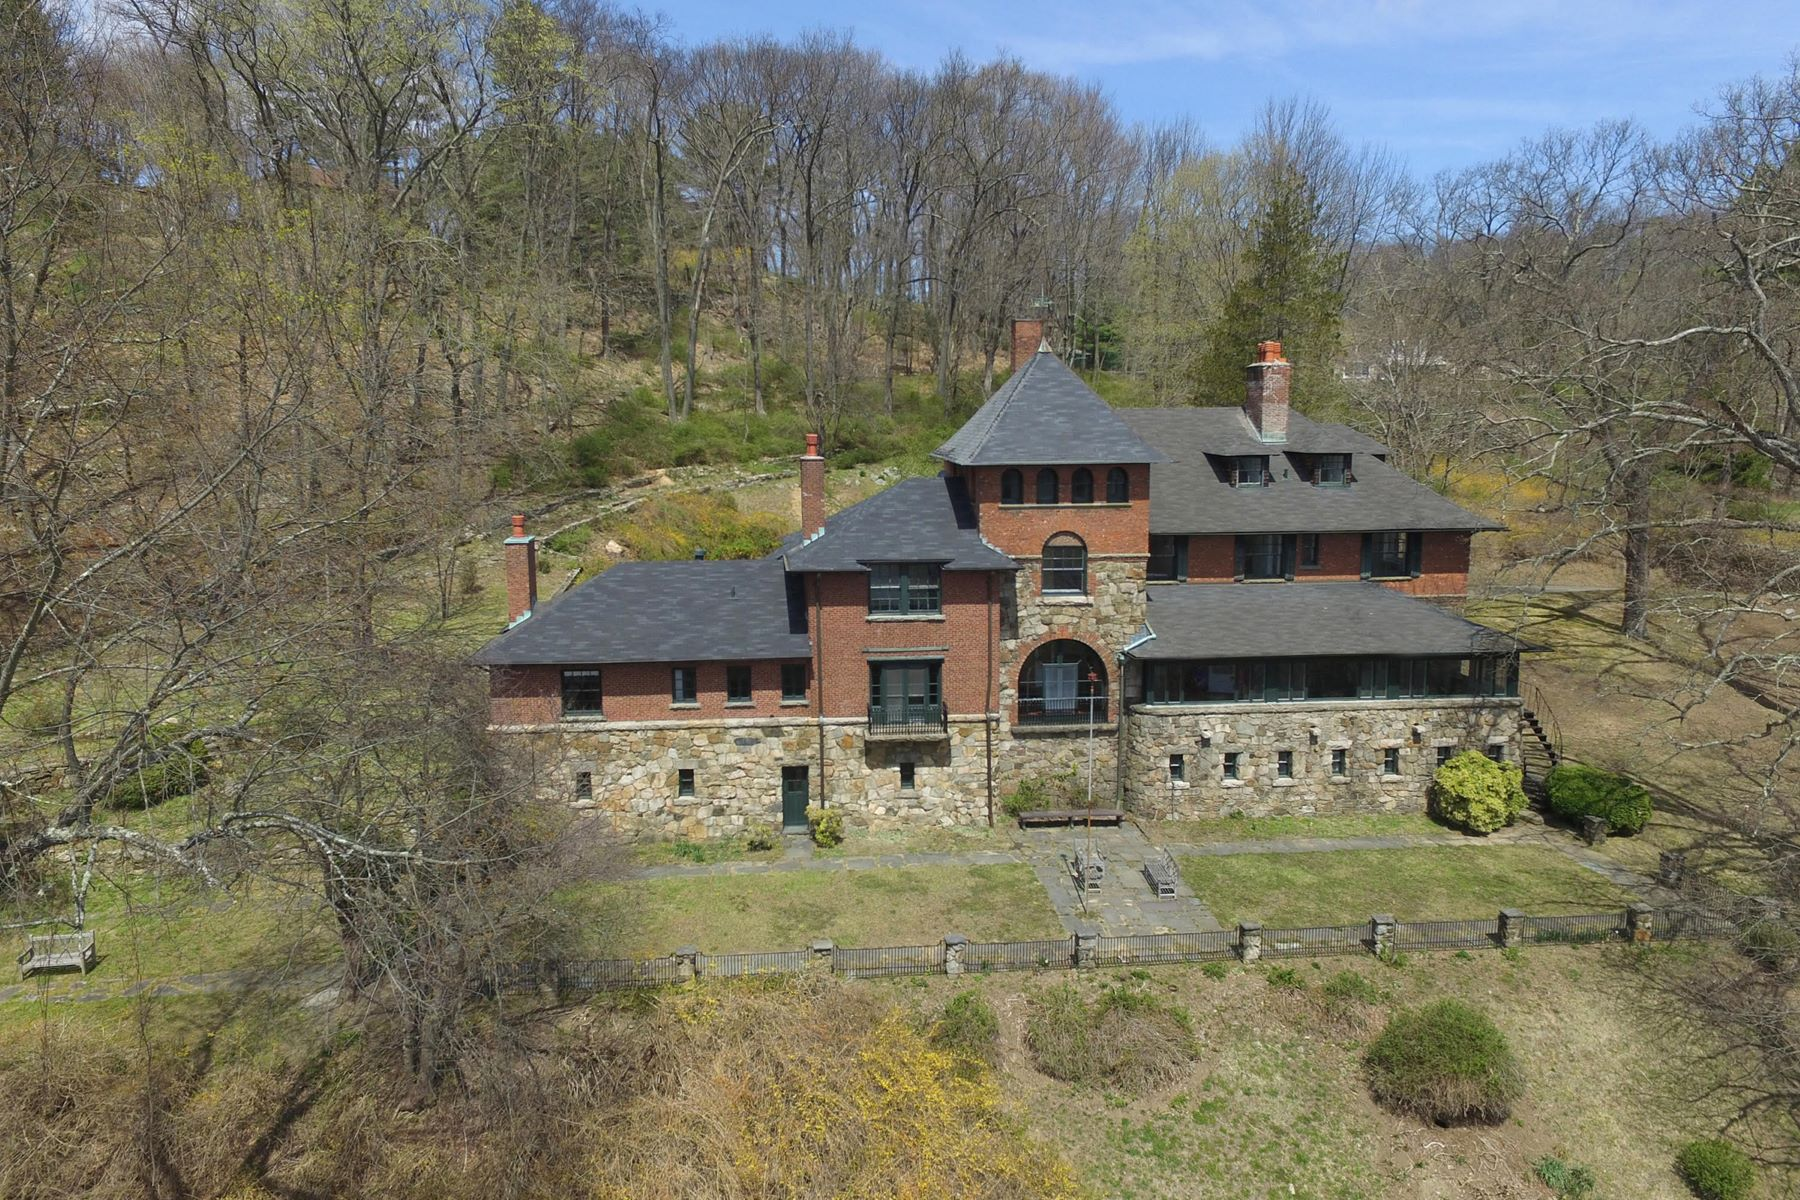 Maison unifamiliale pour l Vente à Historic TB Baldwin Estate 15 Summit Rd Tuxedo Park, New York, 10987 États-Unis